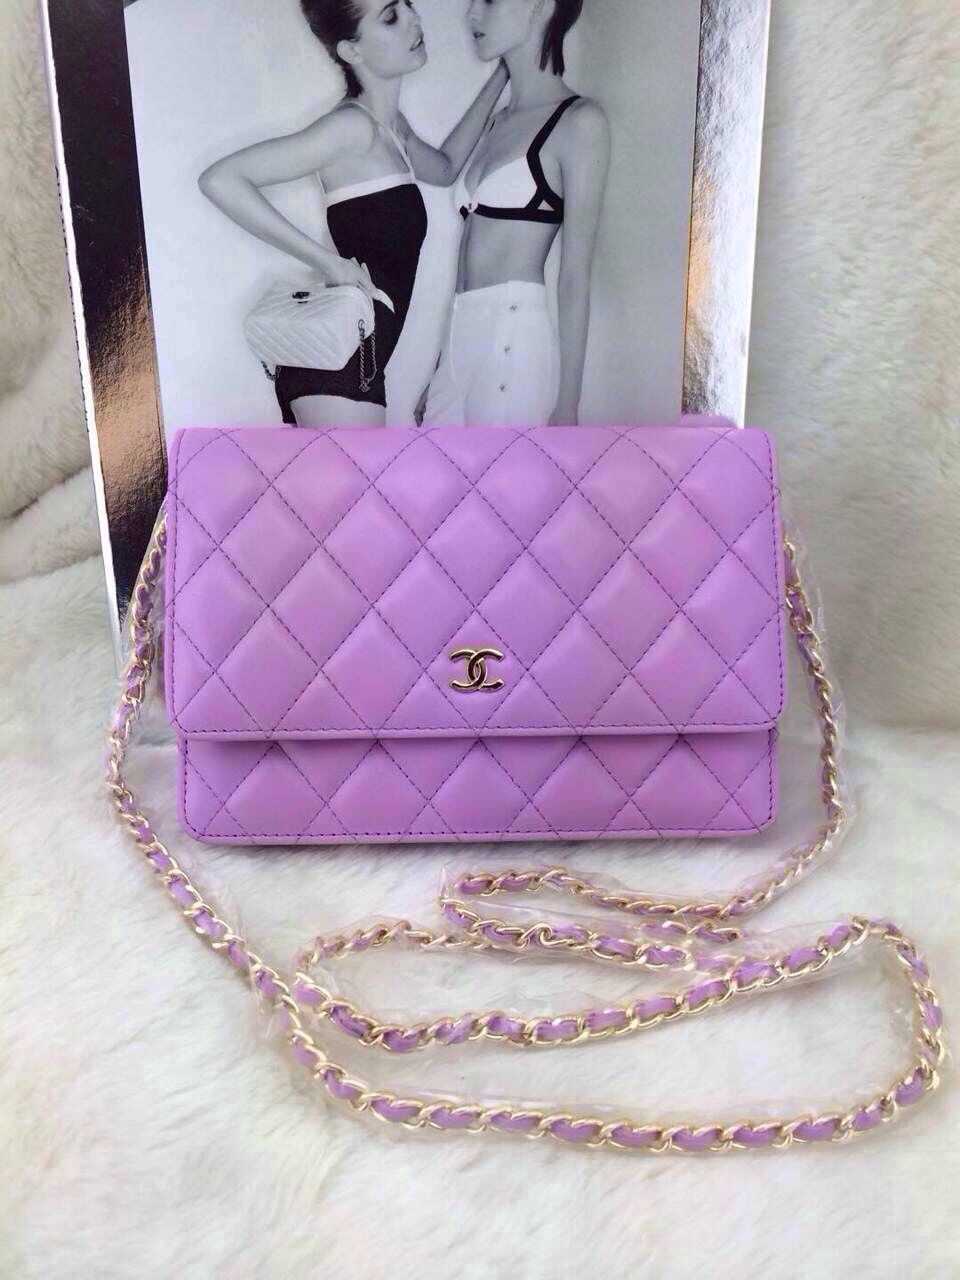 Mini Vs Woc Chanel Woc Mini Clutch Wallet Shoulder Bagsagents Gmail